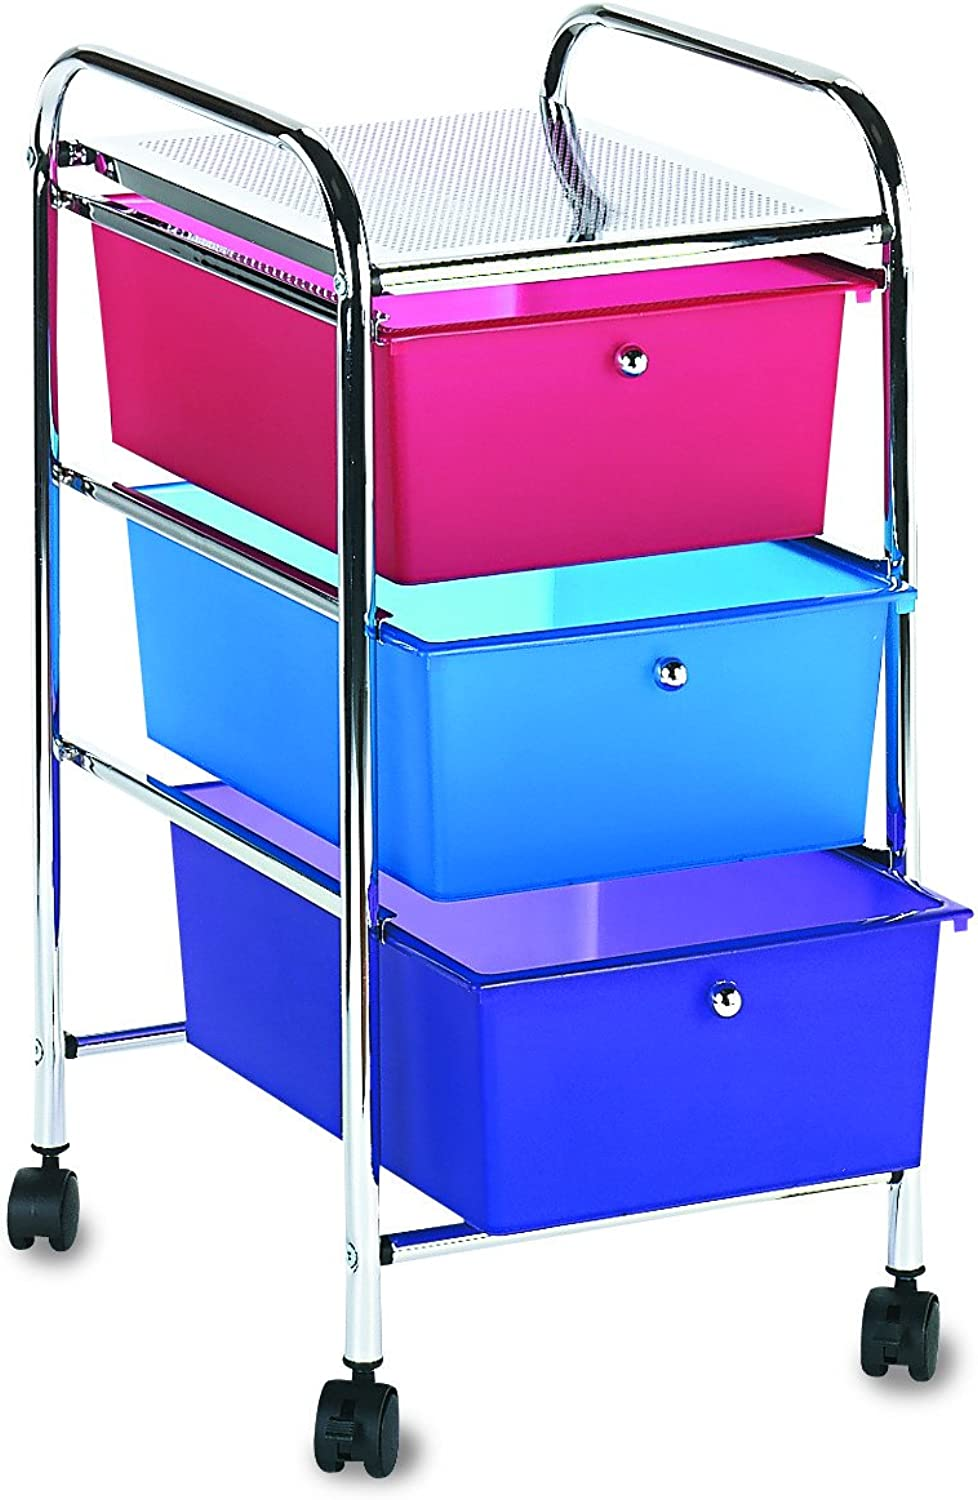 Storage Studios Home Center Rolling Cart W 3 Drawers, 15.25 X26 X13  Multicolor